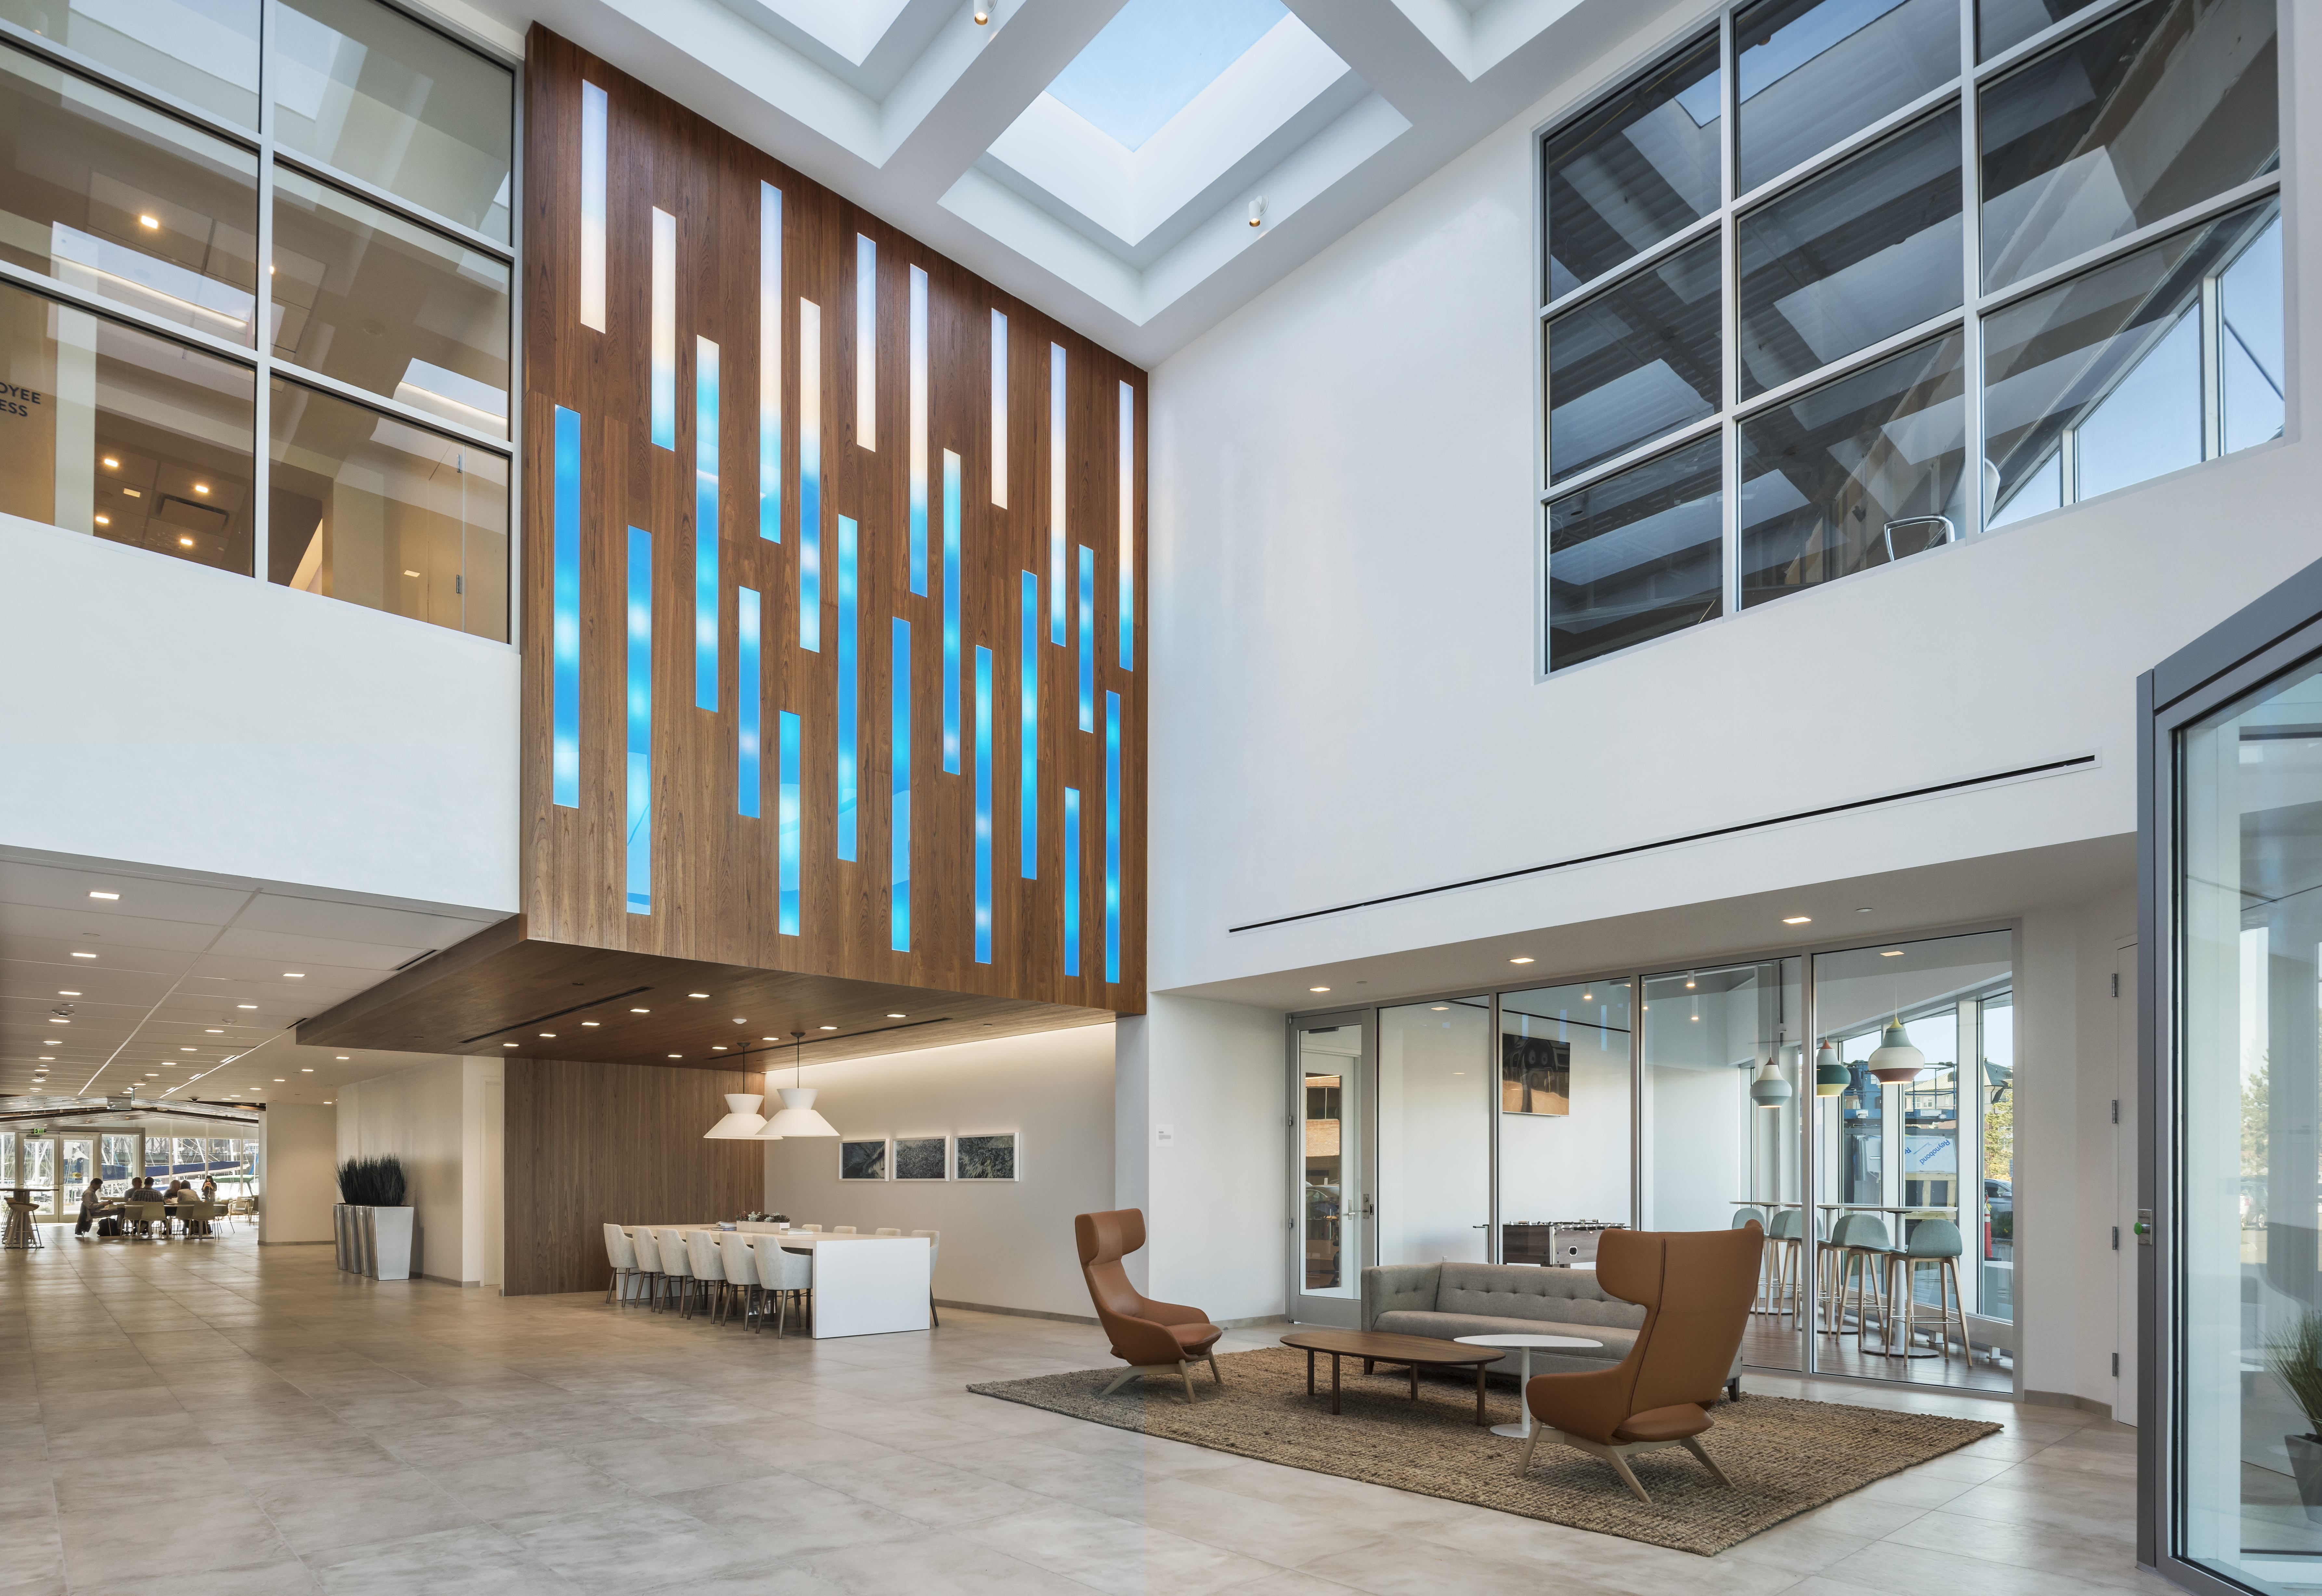 New atrium and entrance experience